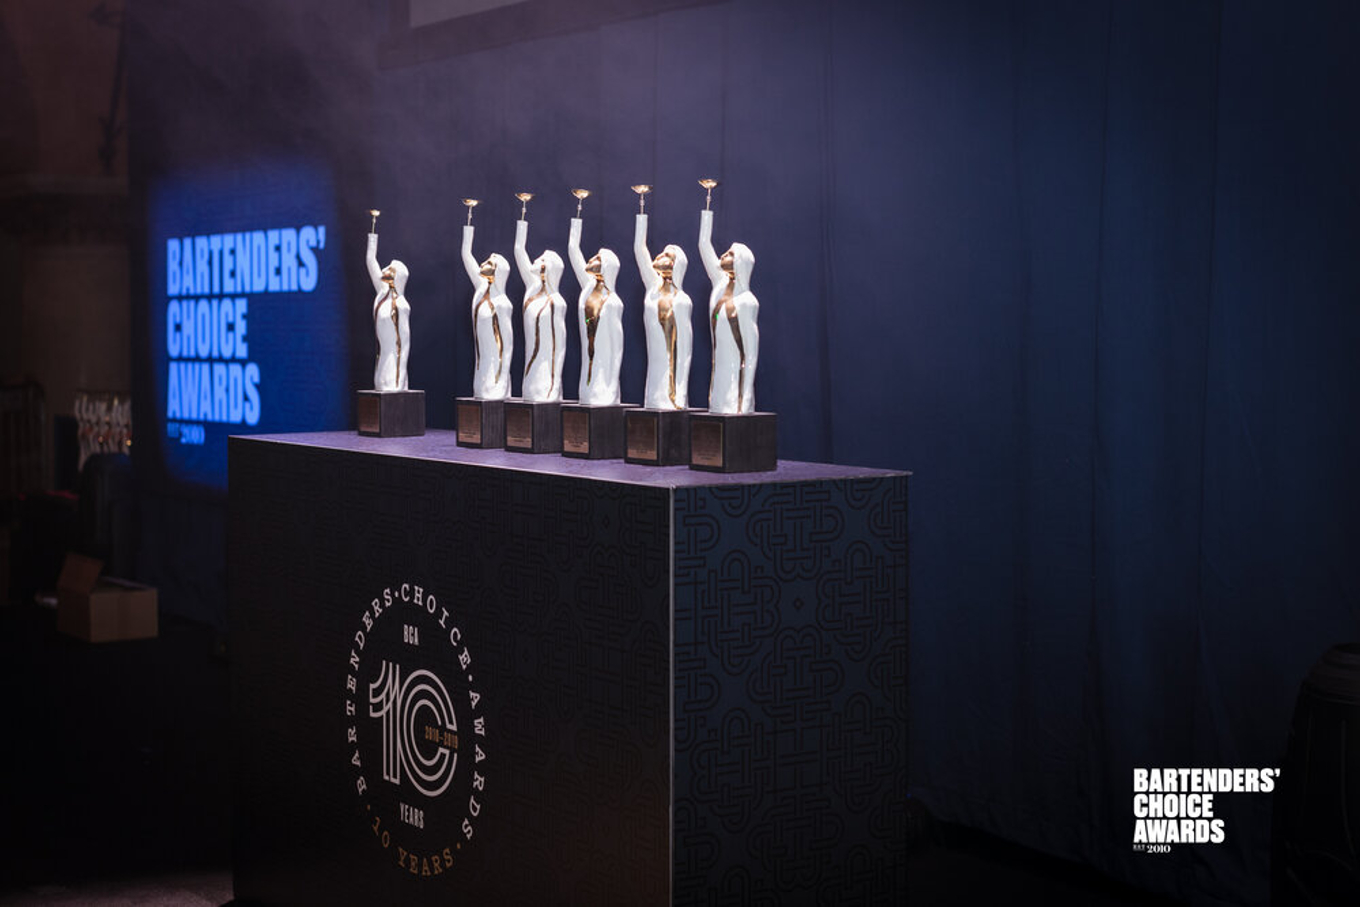 Bartenders' Choice Awards image 1